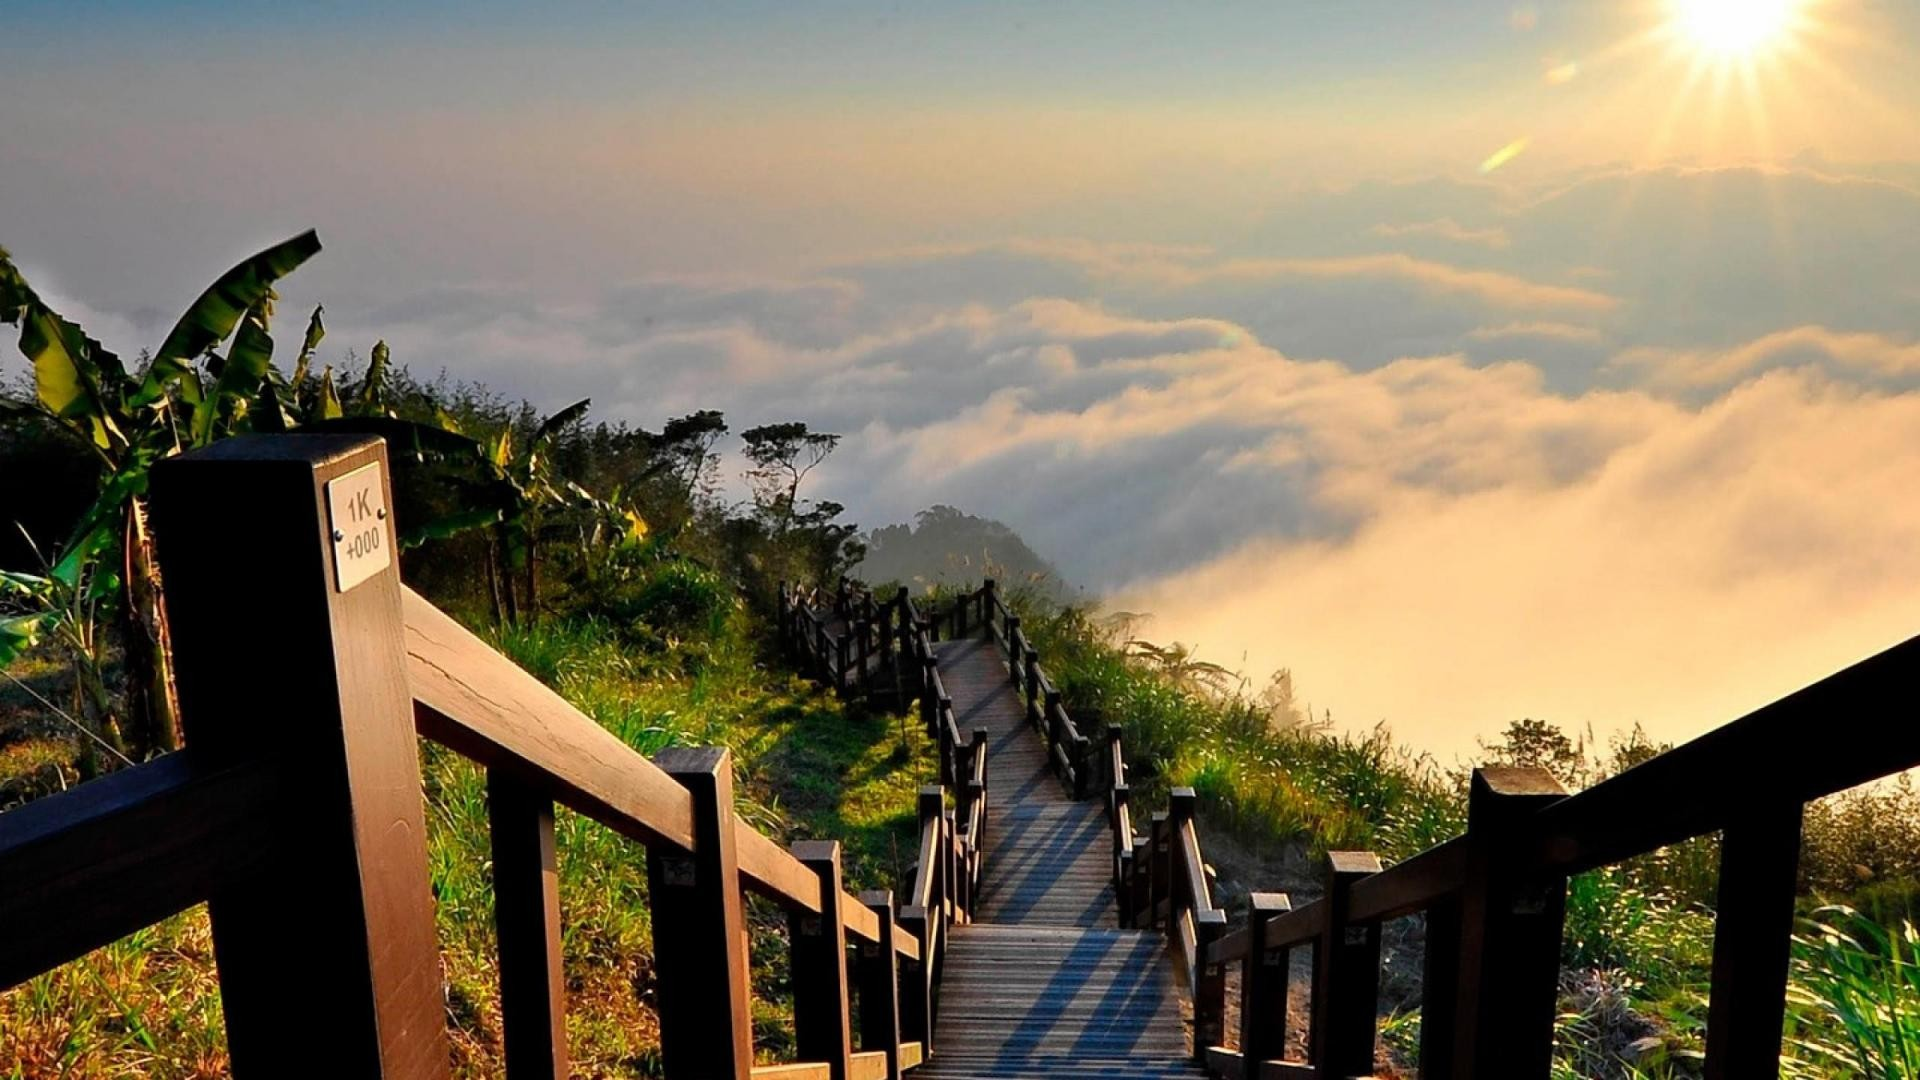 Yushan National Park HD Wallpaper   New HD Wallpapers 1920x1080